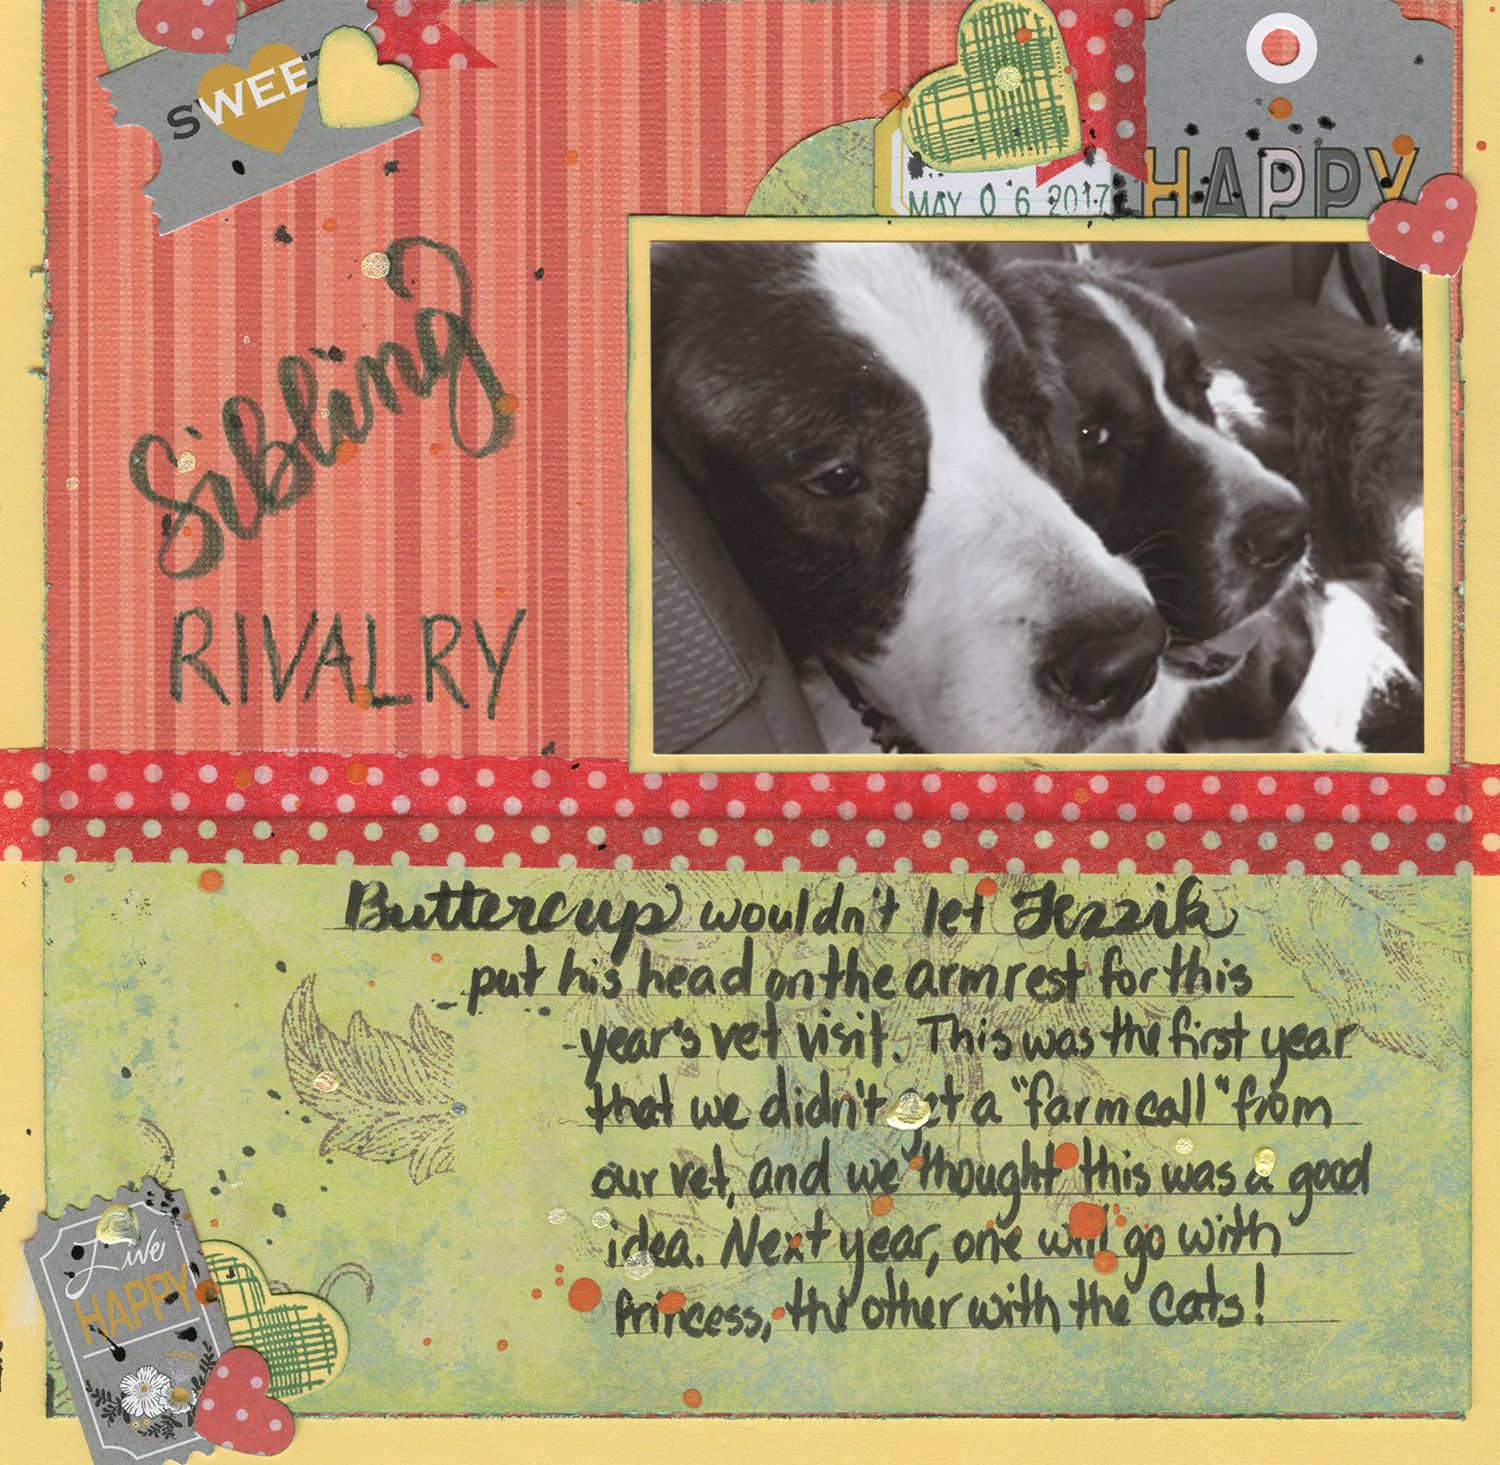 How to scrapbook 8x8 layouts - Sibling Rivalry Scrapbook Com An 8x8 Single Photo Layout With Washi Lettering